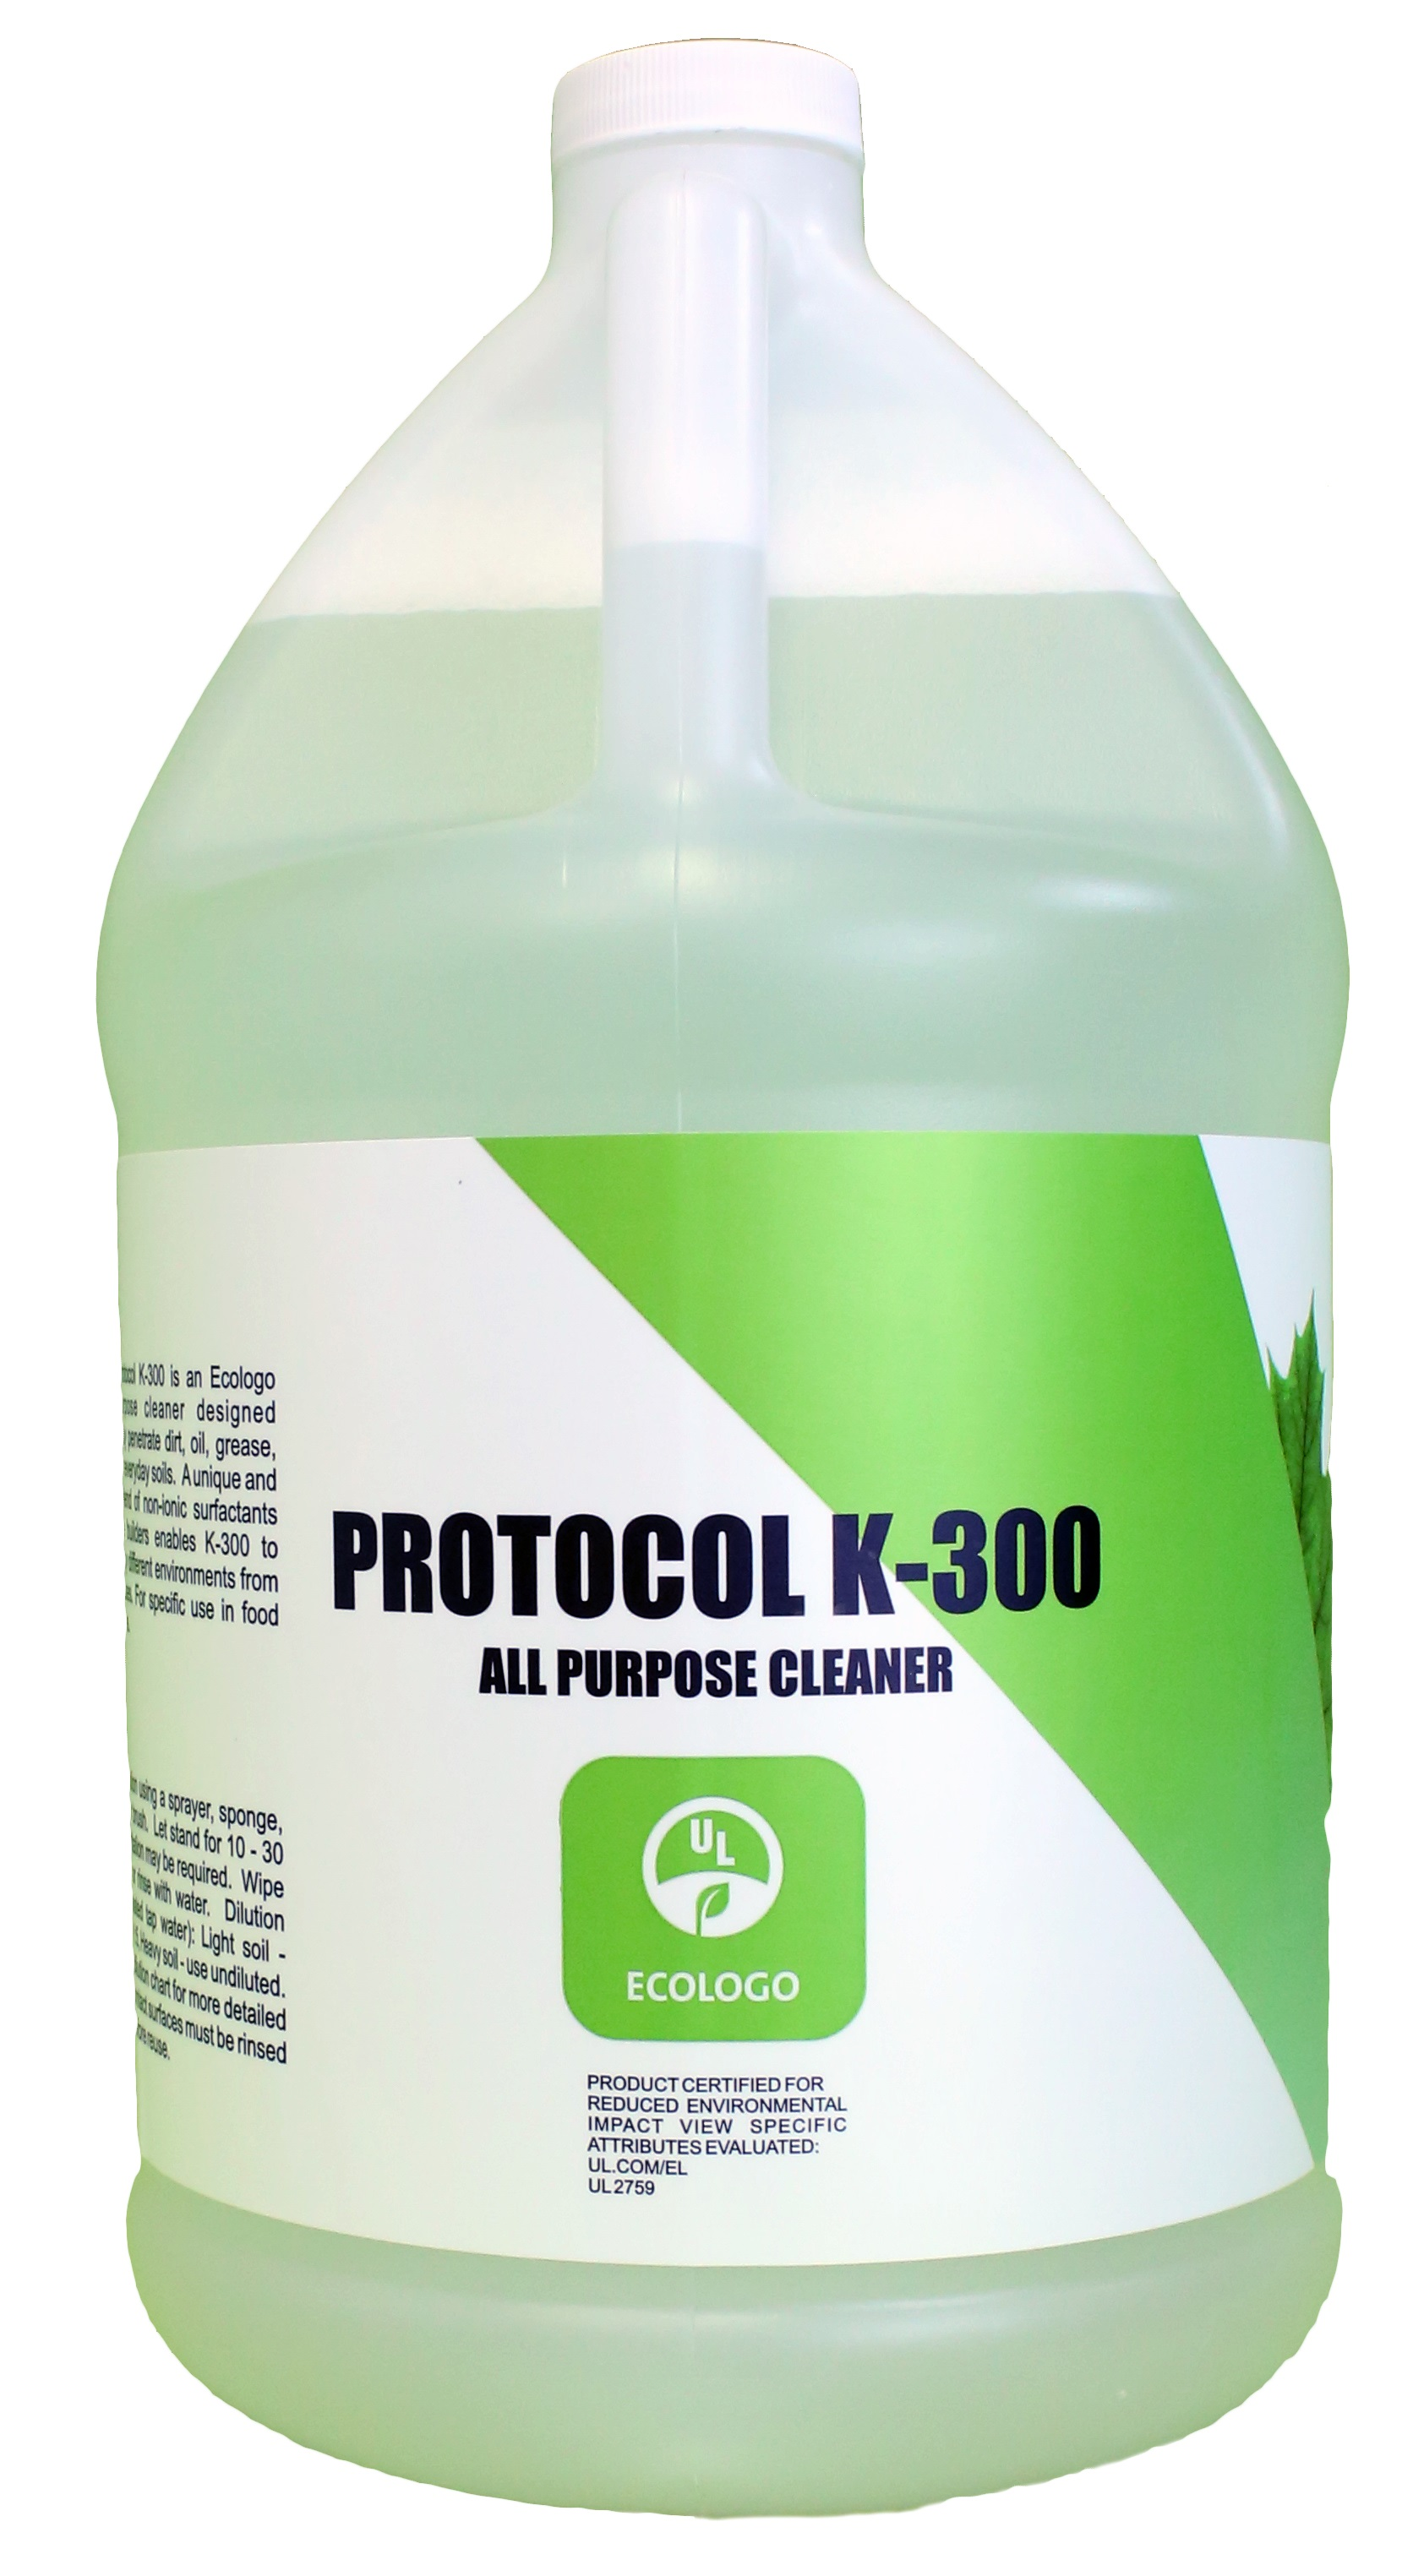 Protocol K300 UL Eco Certified All Purpose Cleaner - 4 Litres